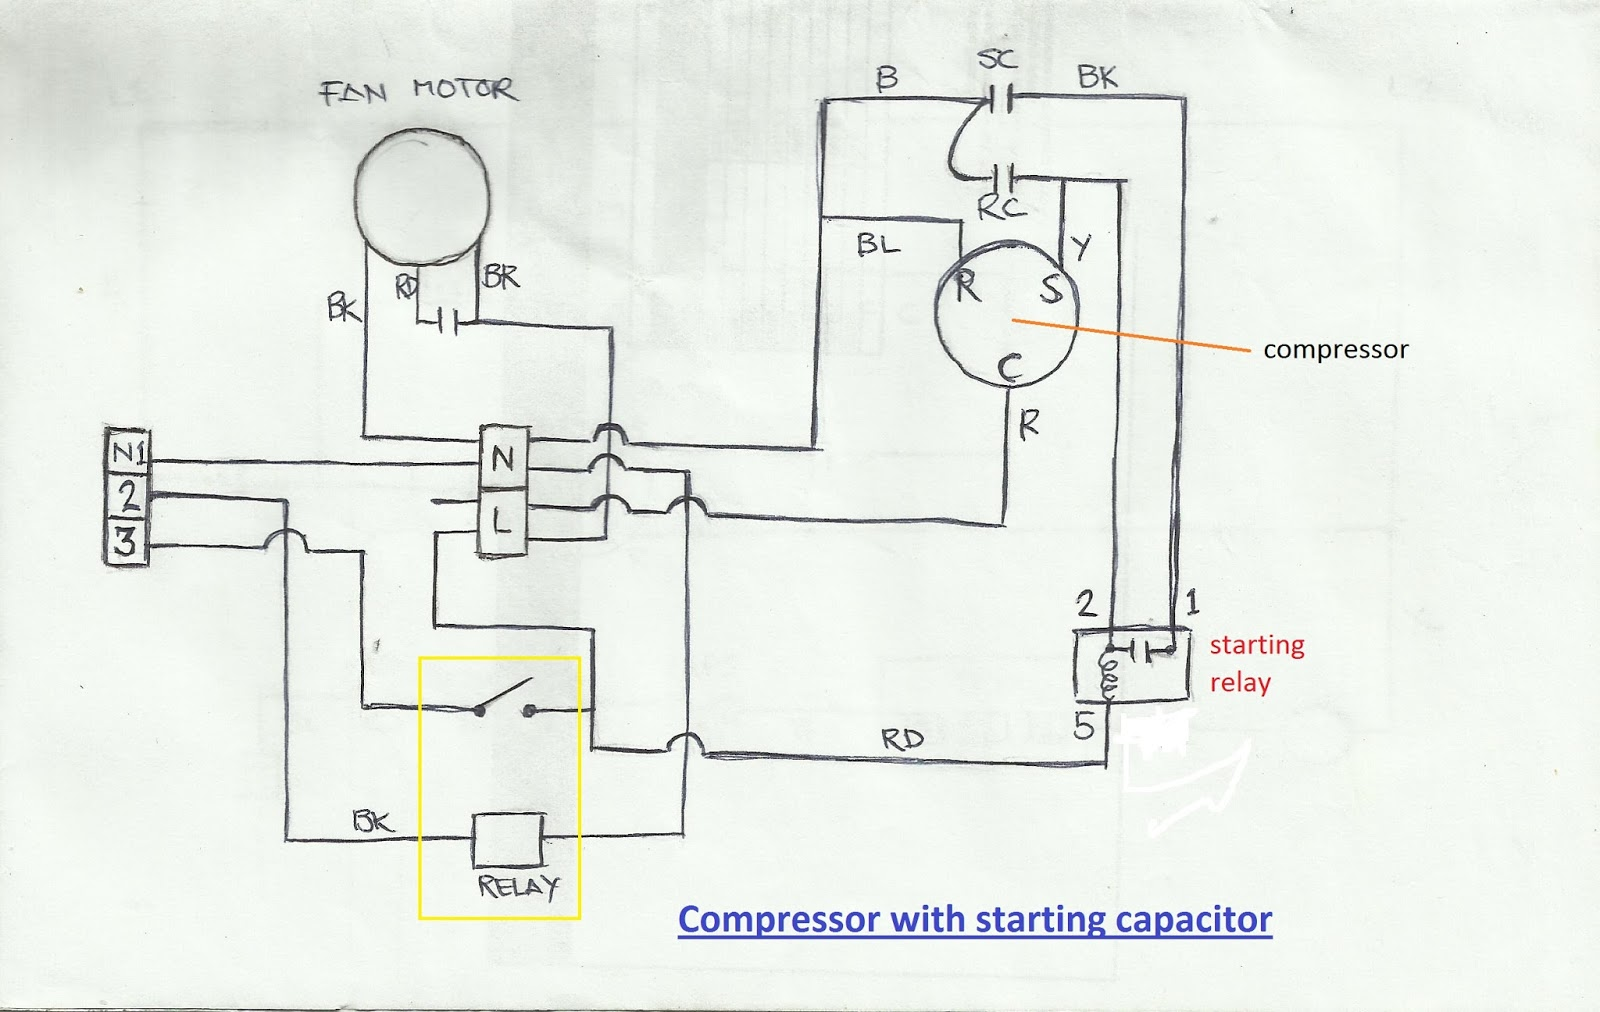 18 refrigeration and air conditioning repair wiring diagram of compressor motor wiring diagram at crackthecode.co